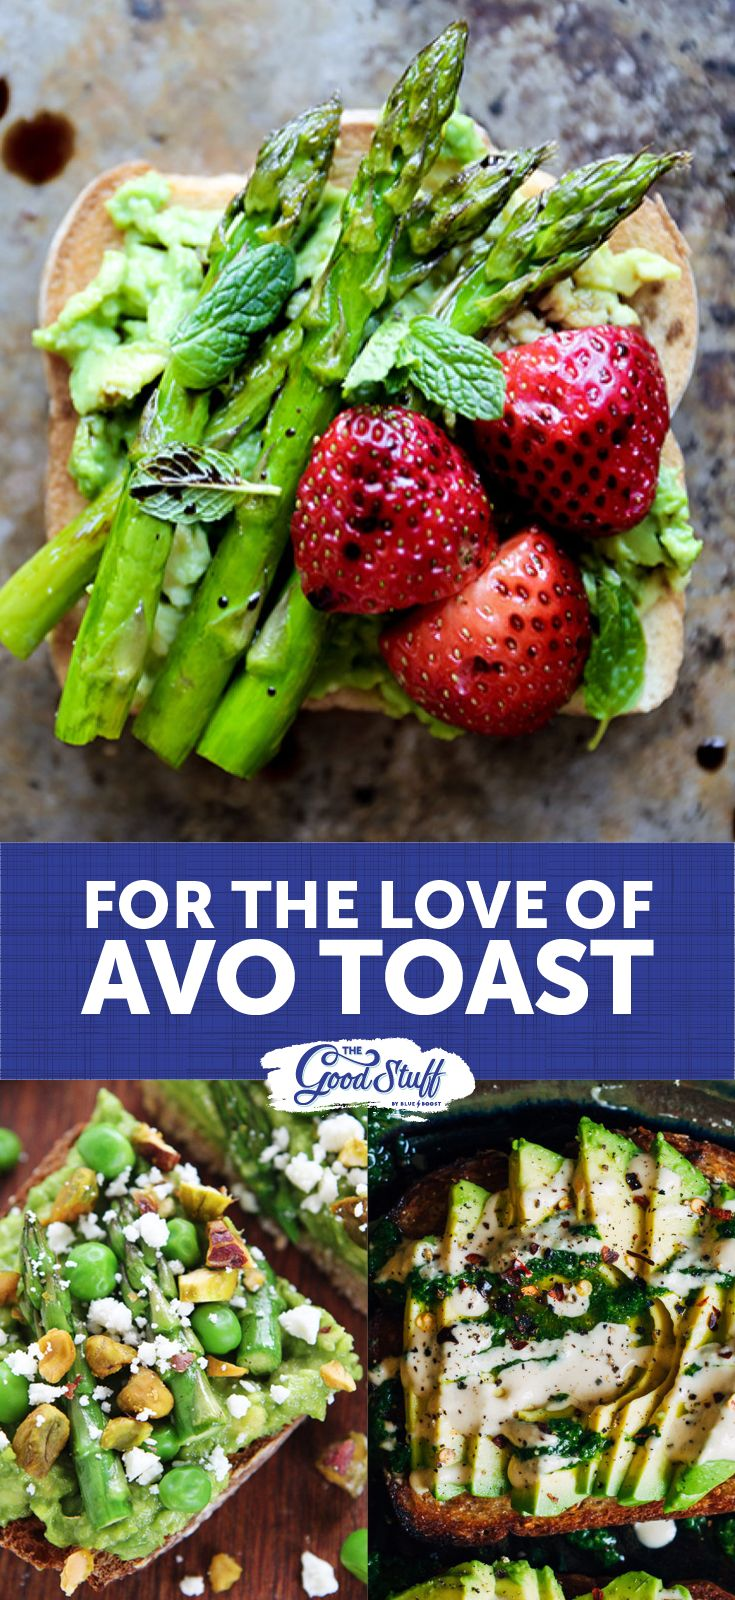 We're not just talking creamy delicious slices on just-popped crunchiness, NO SIREE, we're taking the good ol'fashioned up a few notches with a round-up of upgrades so good they'll knock your socks off!  Follow the link for toasts so good you'll want to lick the screen!  #Avocado #avotoast #Avo #toast #recipes #healthy #healthyfats #lowcarb #goodforyou #vegan #blueboostsa #TheGoodStuff